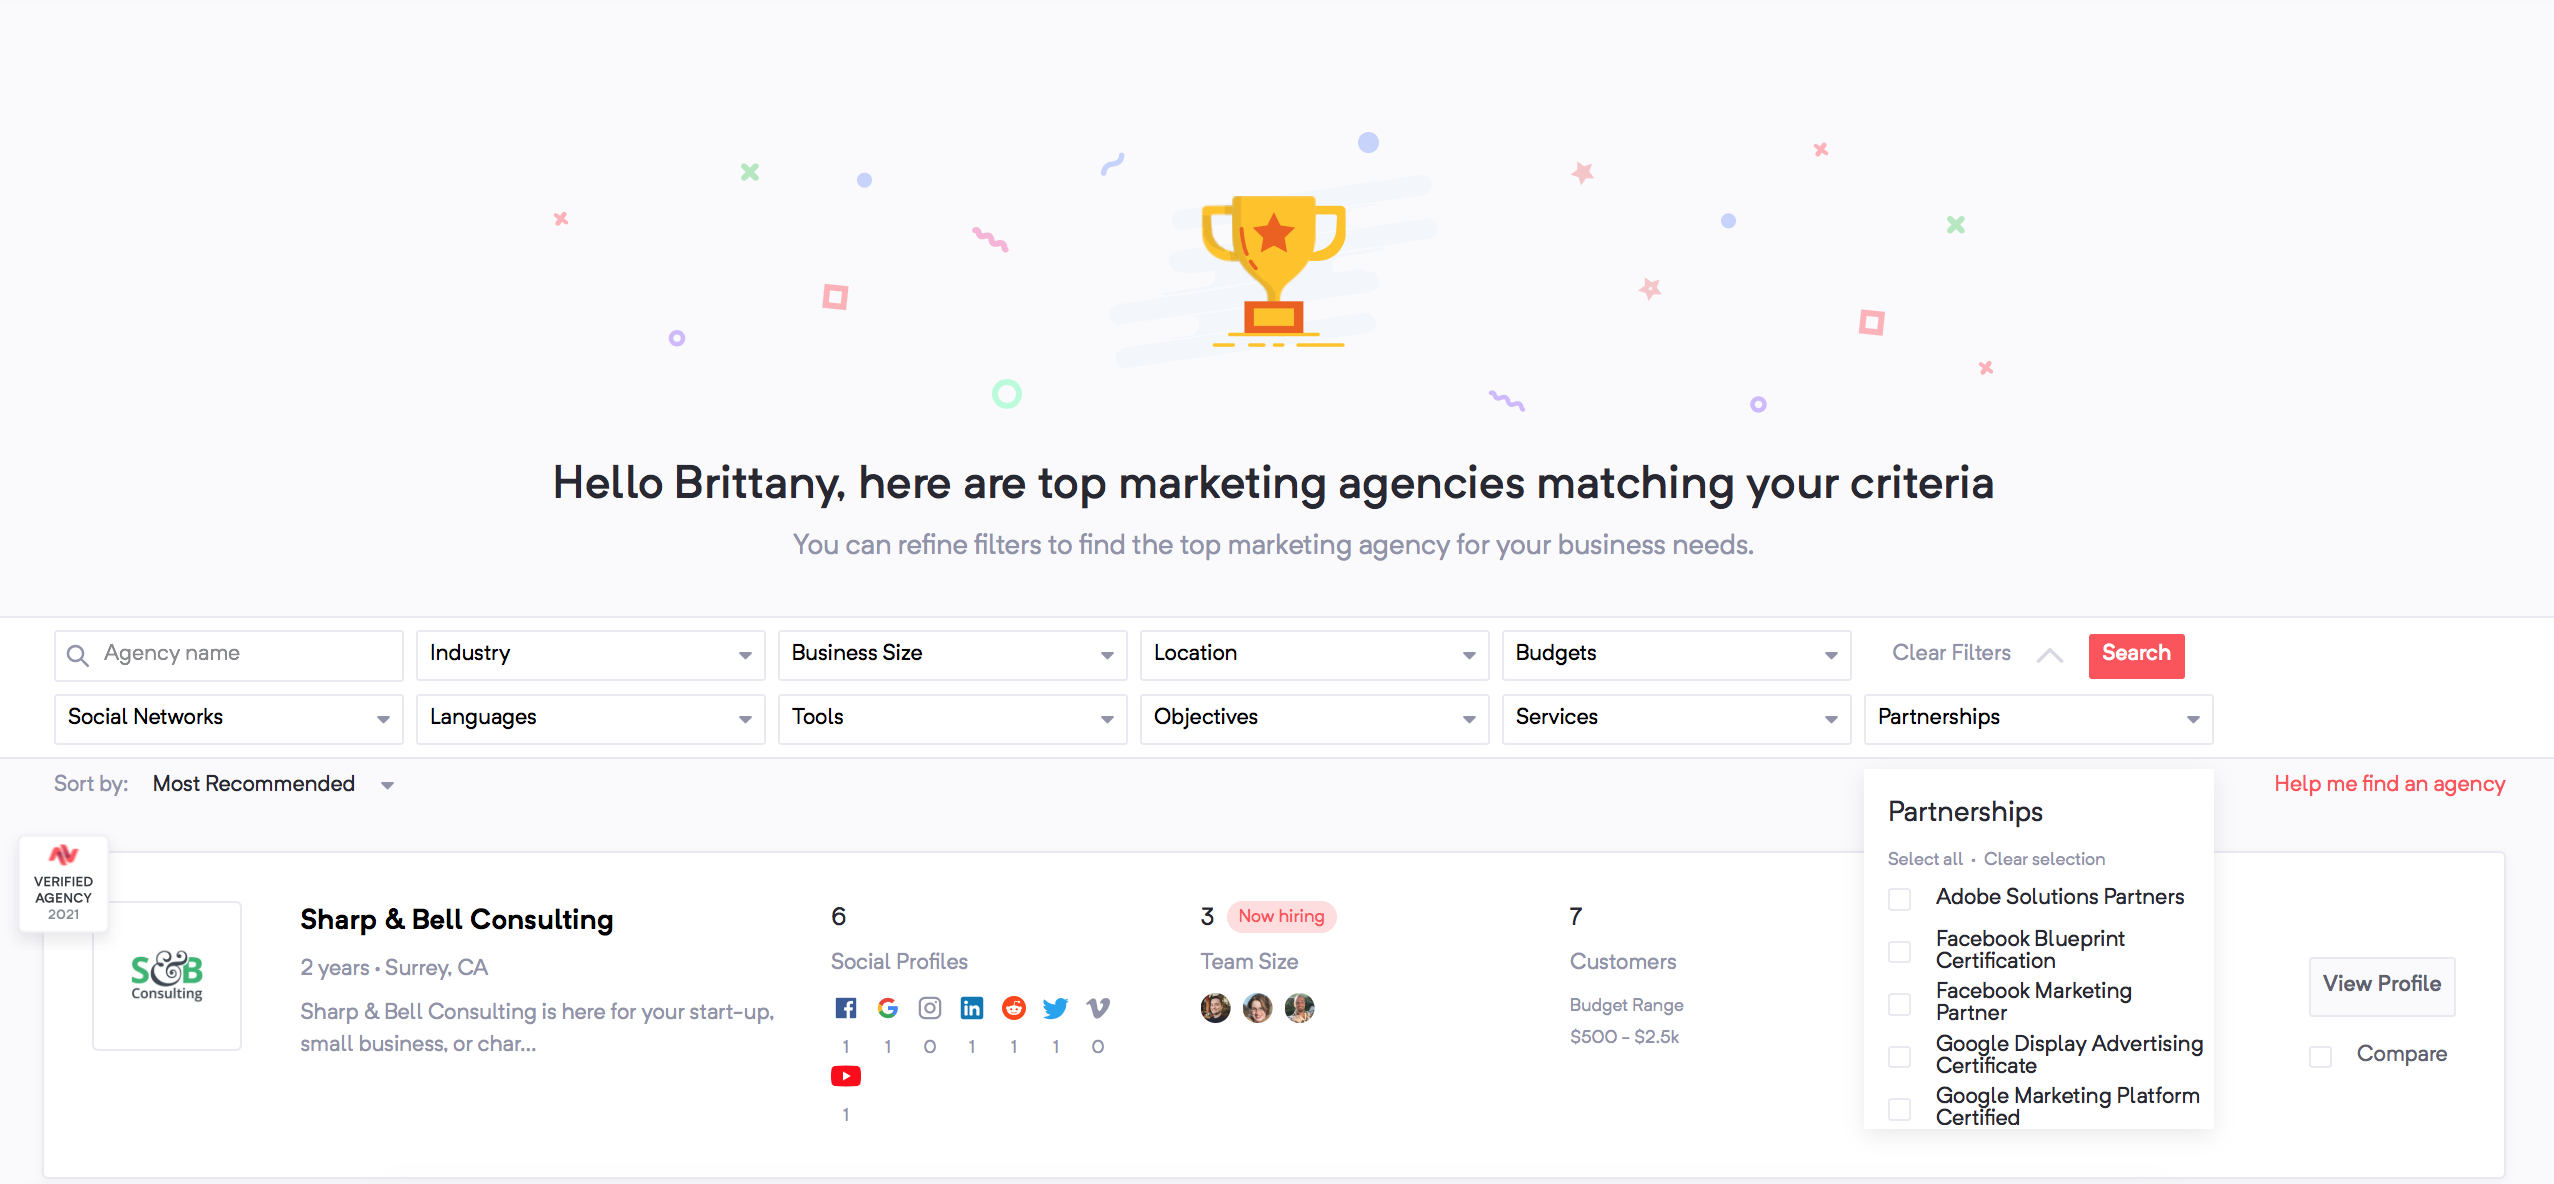 Hiring a Digital Marketing Agency in a Post-Pandemic World | Agency Vista Search